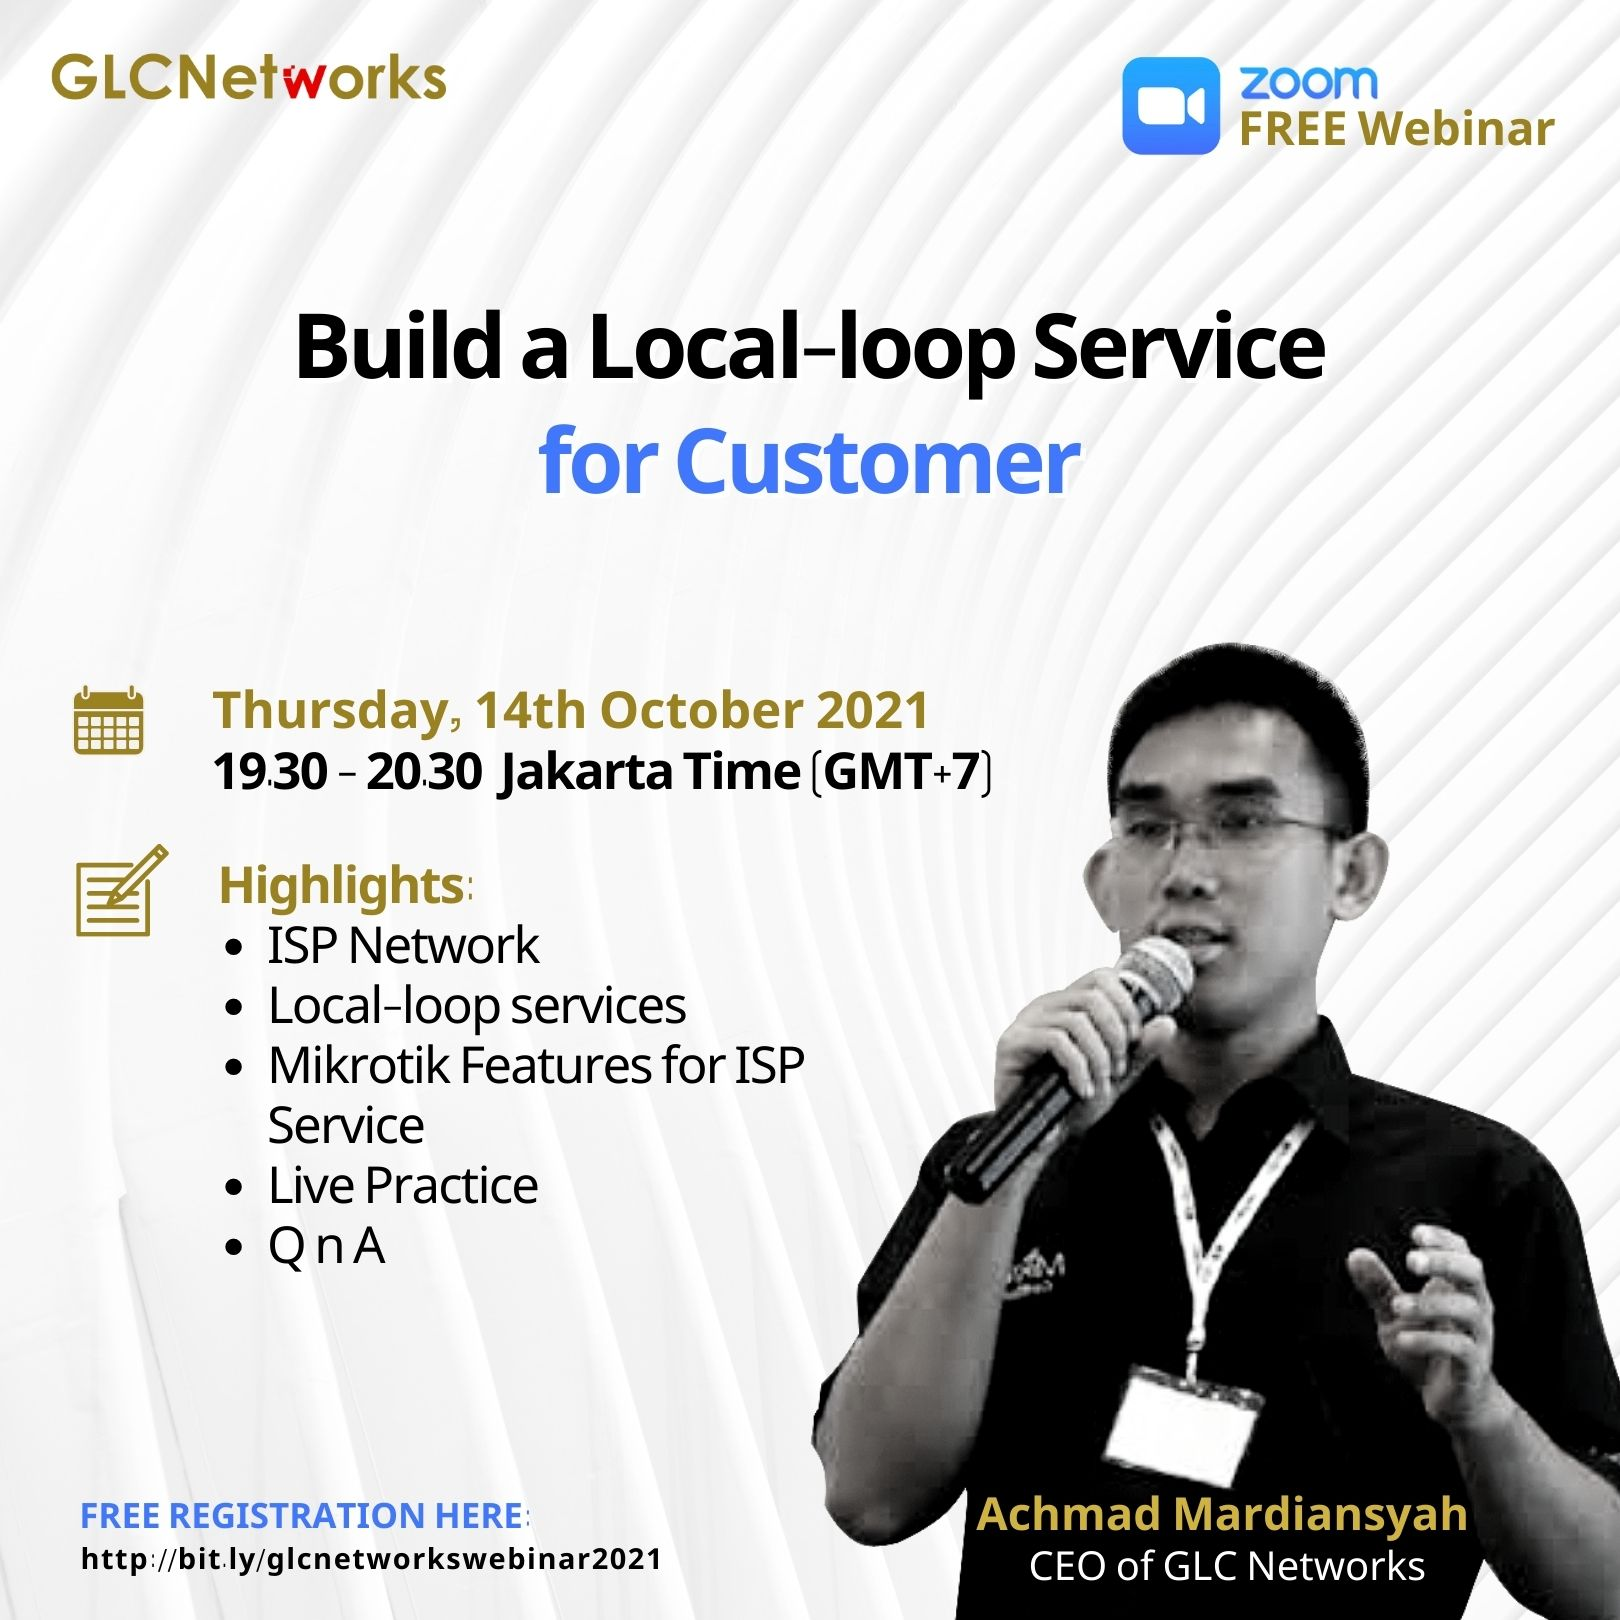 Build a Local-loop Service for Customer